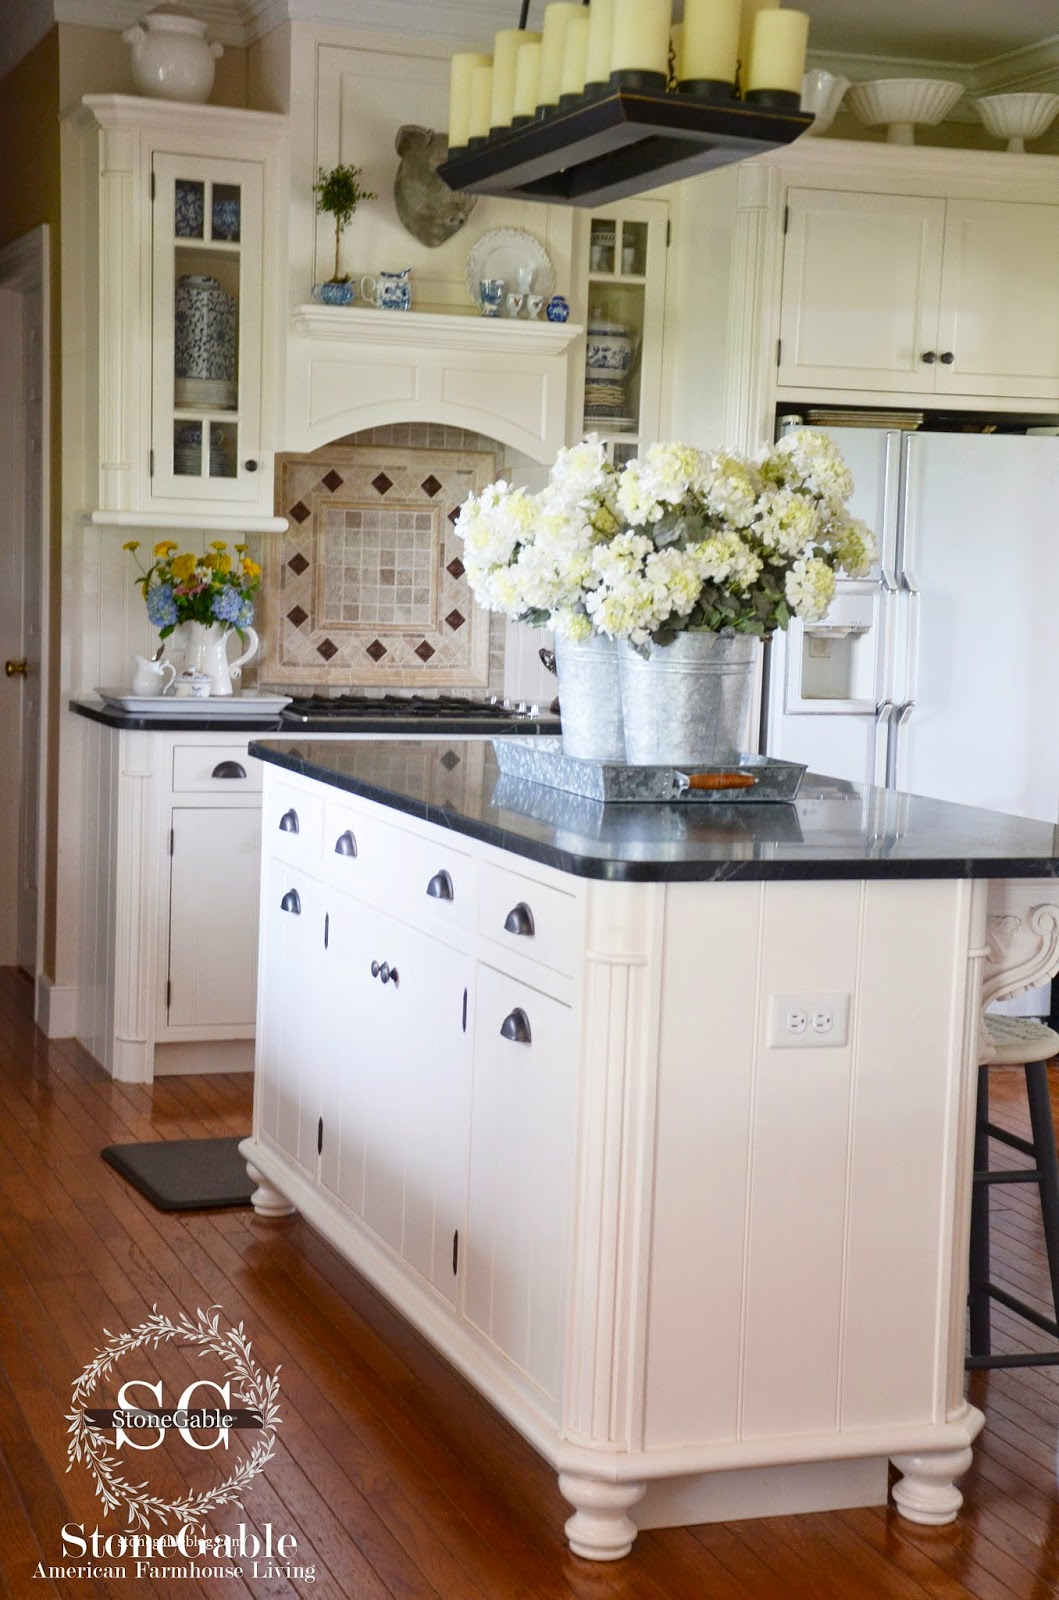 10 elements of a farmhouse kitchen - stonegable